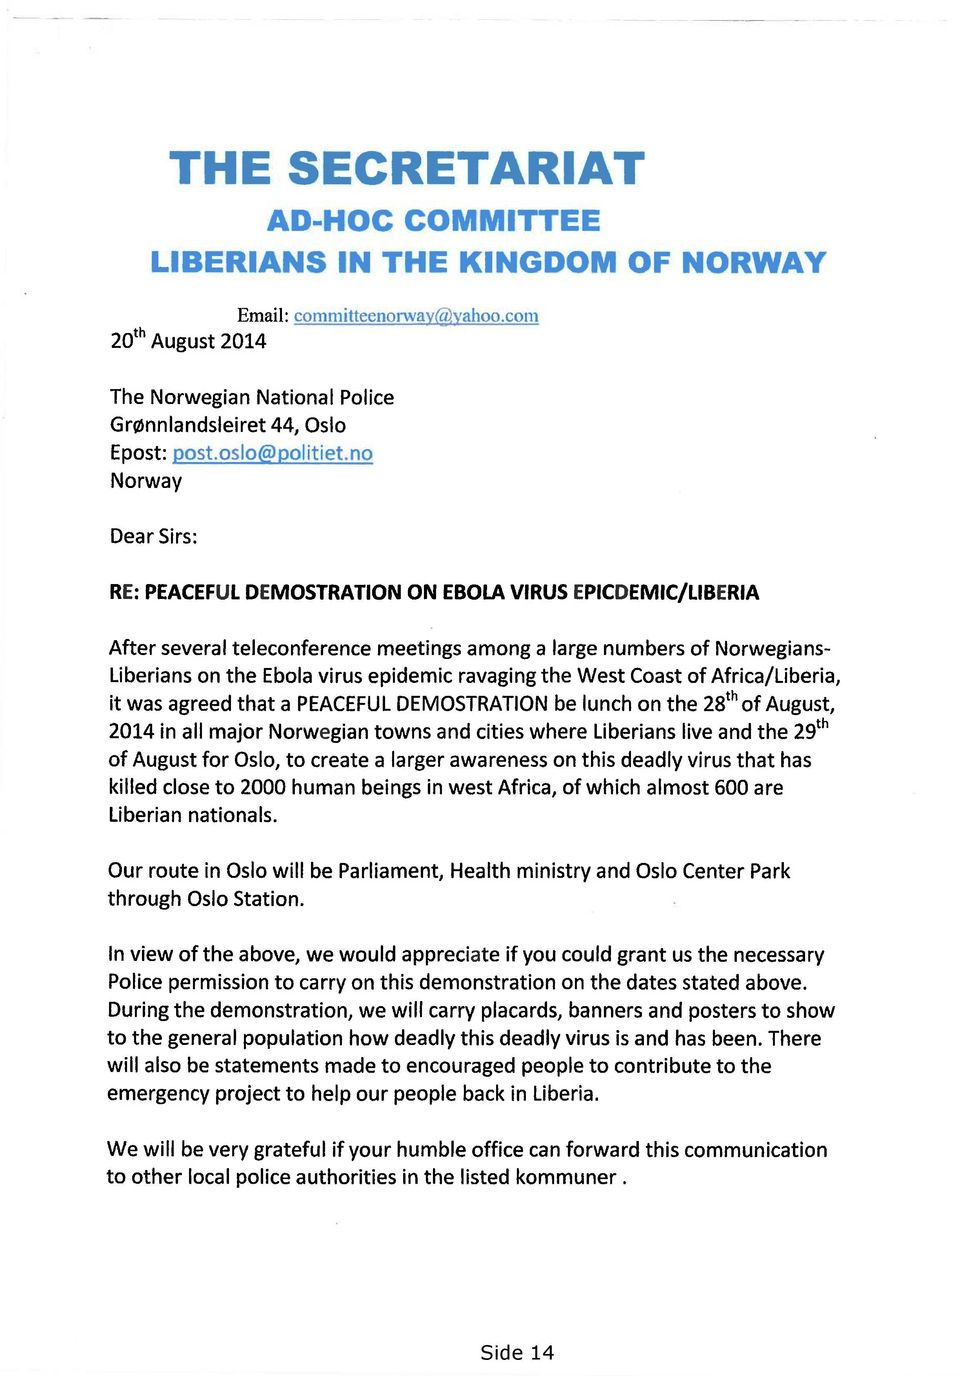 JJ_Q Norway Dear Sirs: RE: PEACEFUL DEMOSTRATION ON EBOLA VIRUS EPICDEMIC/LIBERIA After several teleconference meetings among a large numbers of Norwegians- Liberians on the Ebola virus epidemic